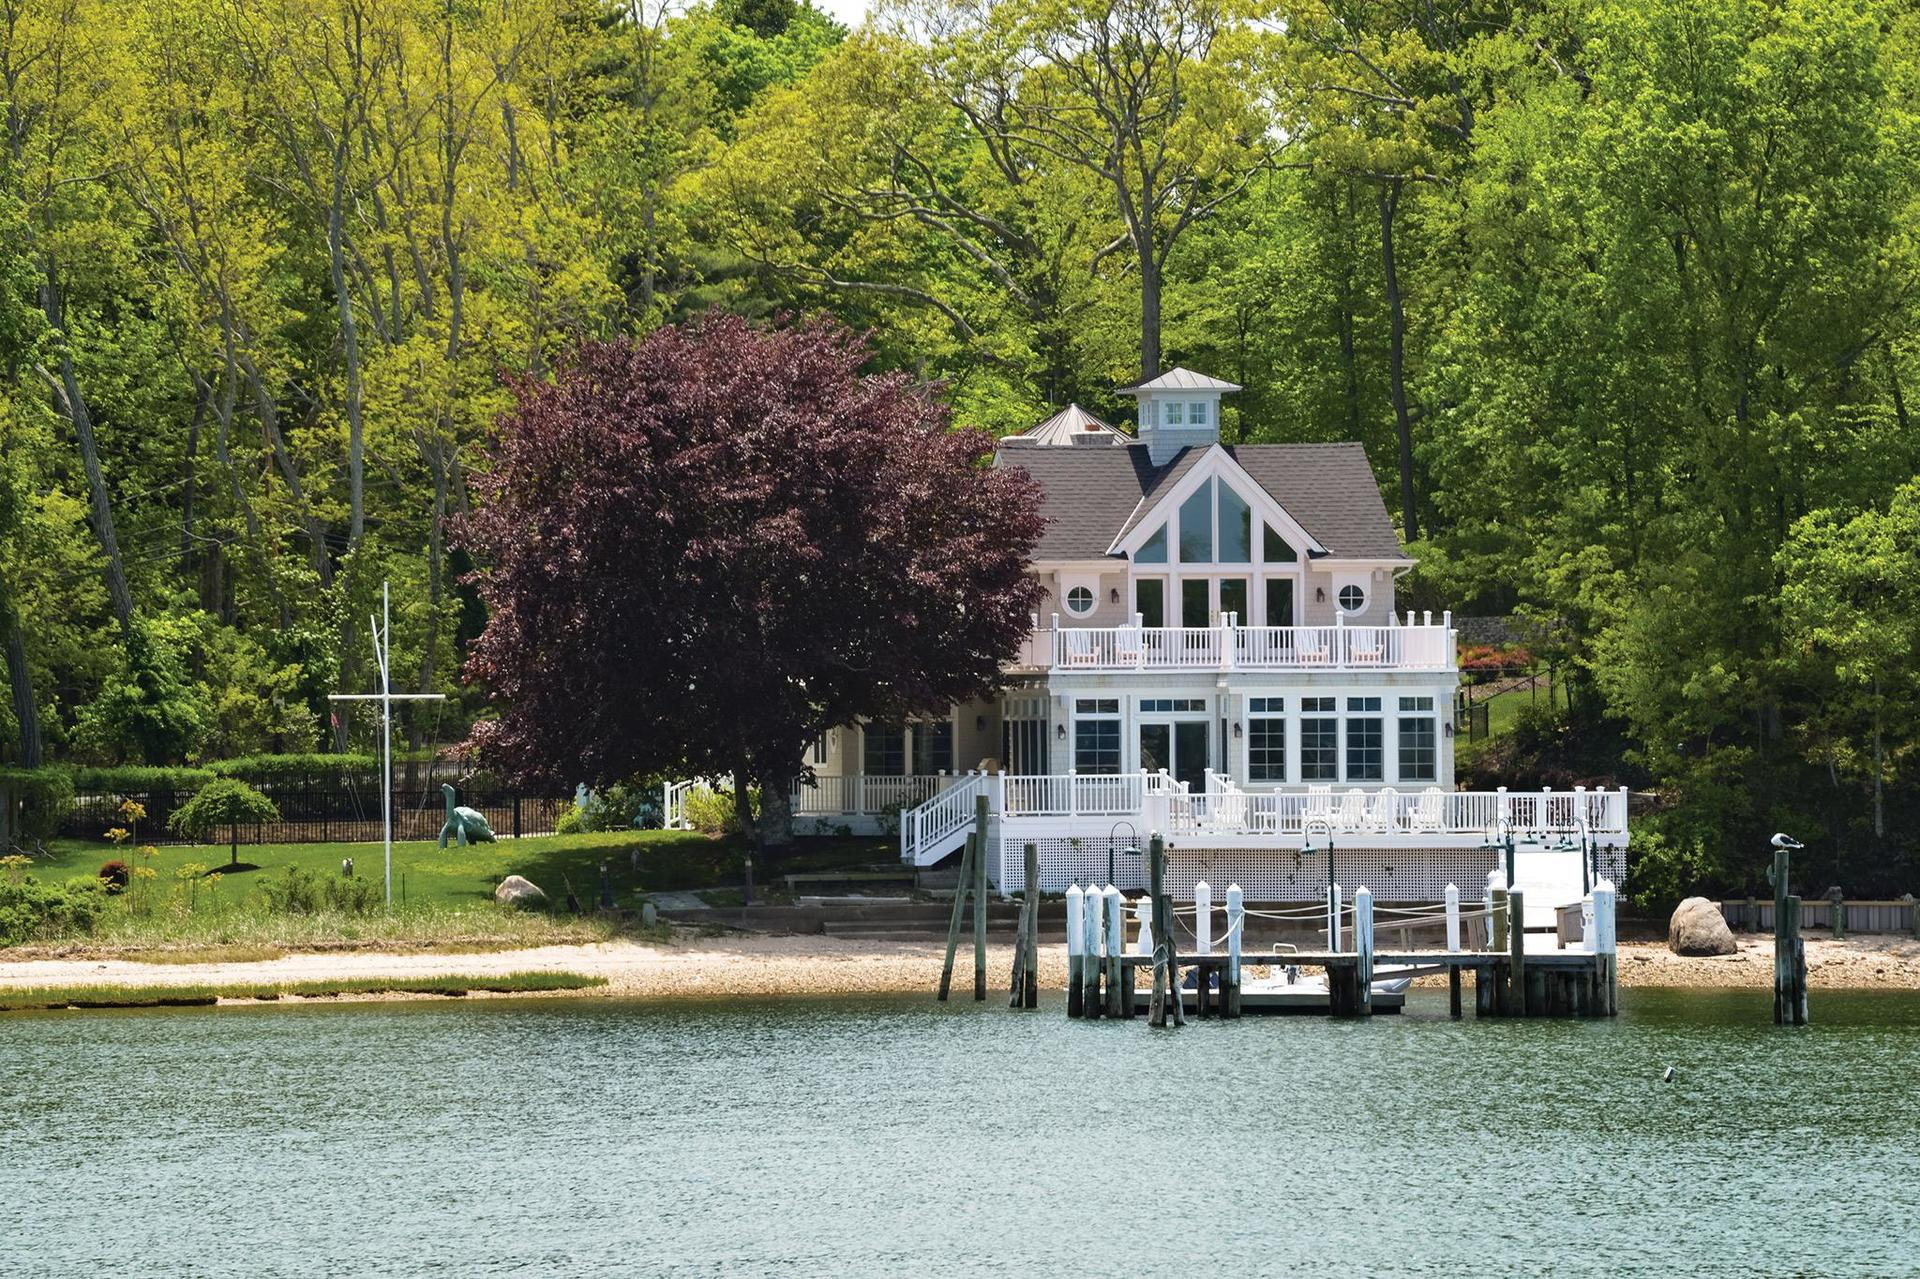 Single Family Home for Sale at Exquisite Dering Harbor Waterfront With Deep Water Dock Shelter Island, New York